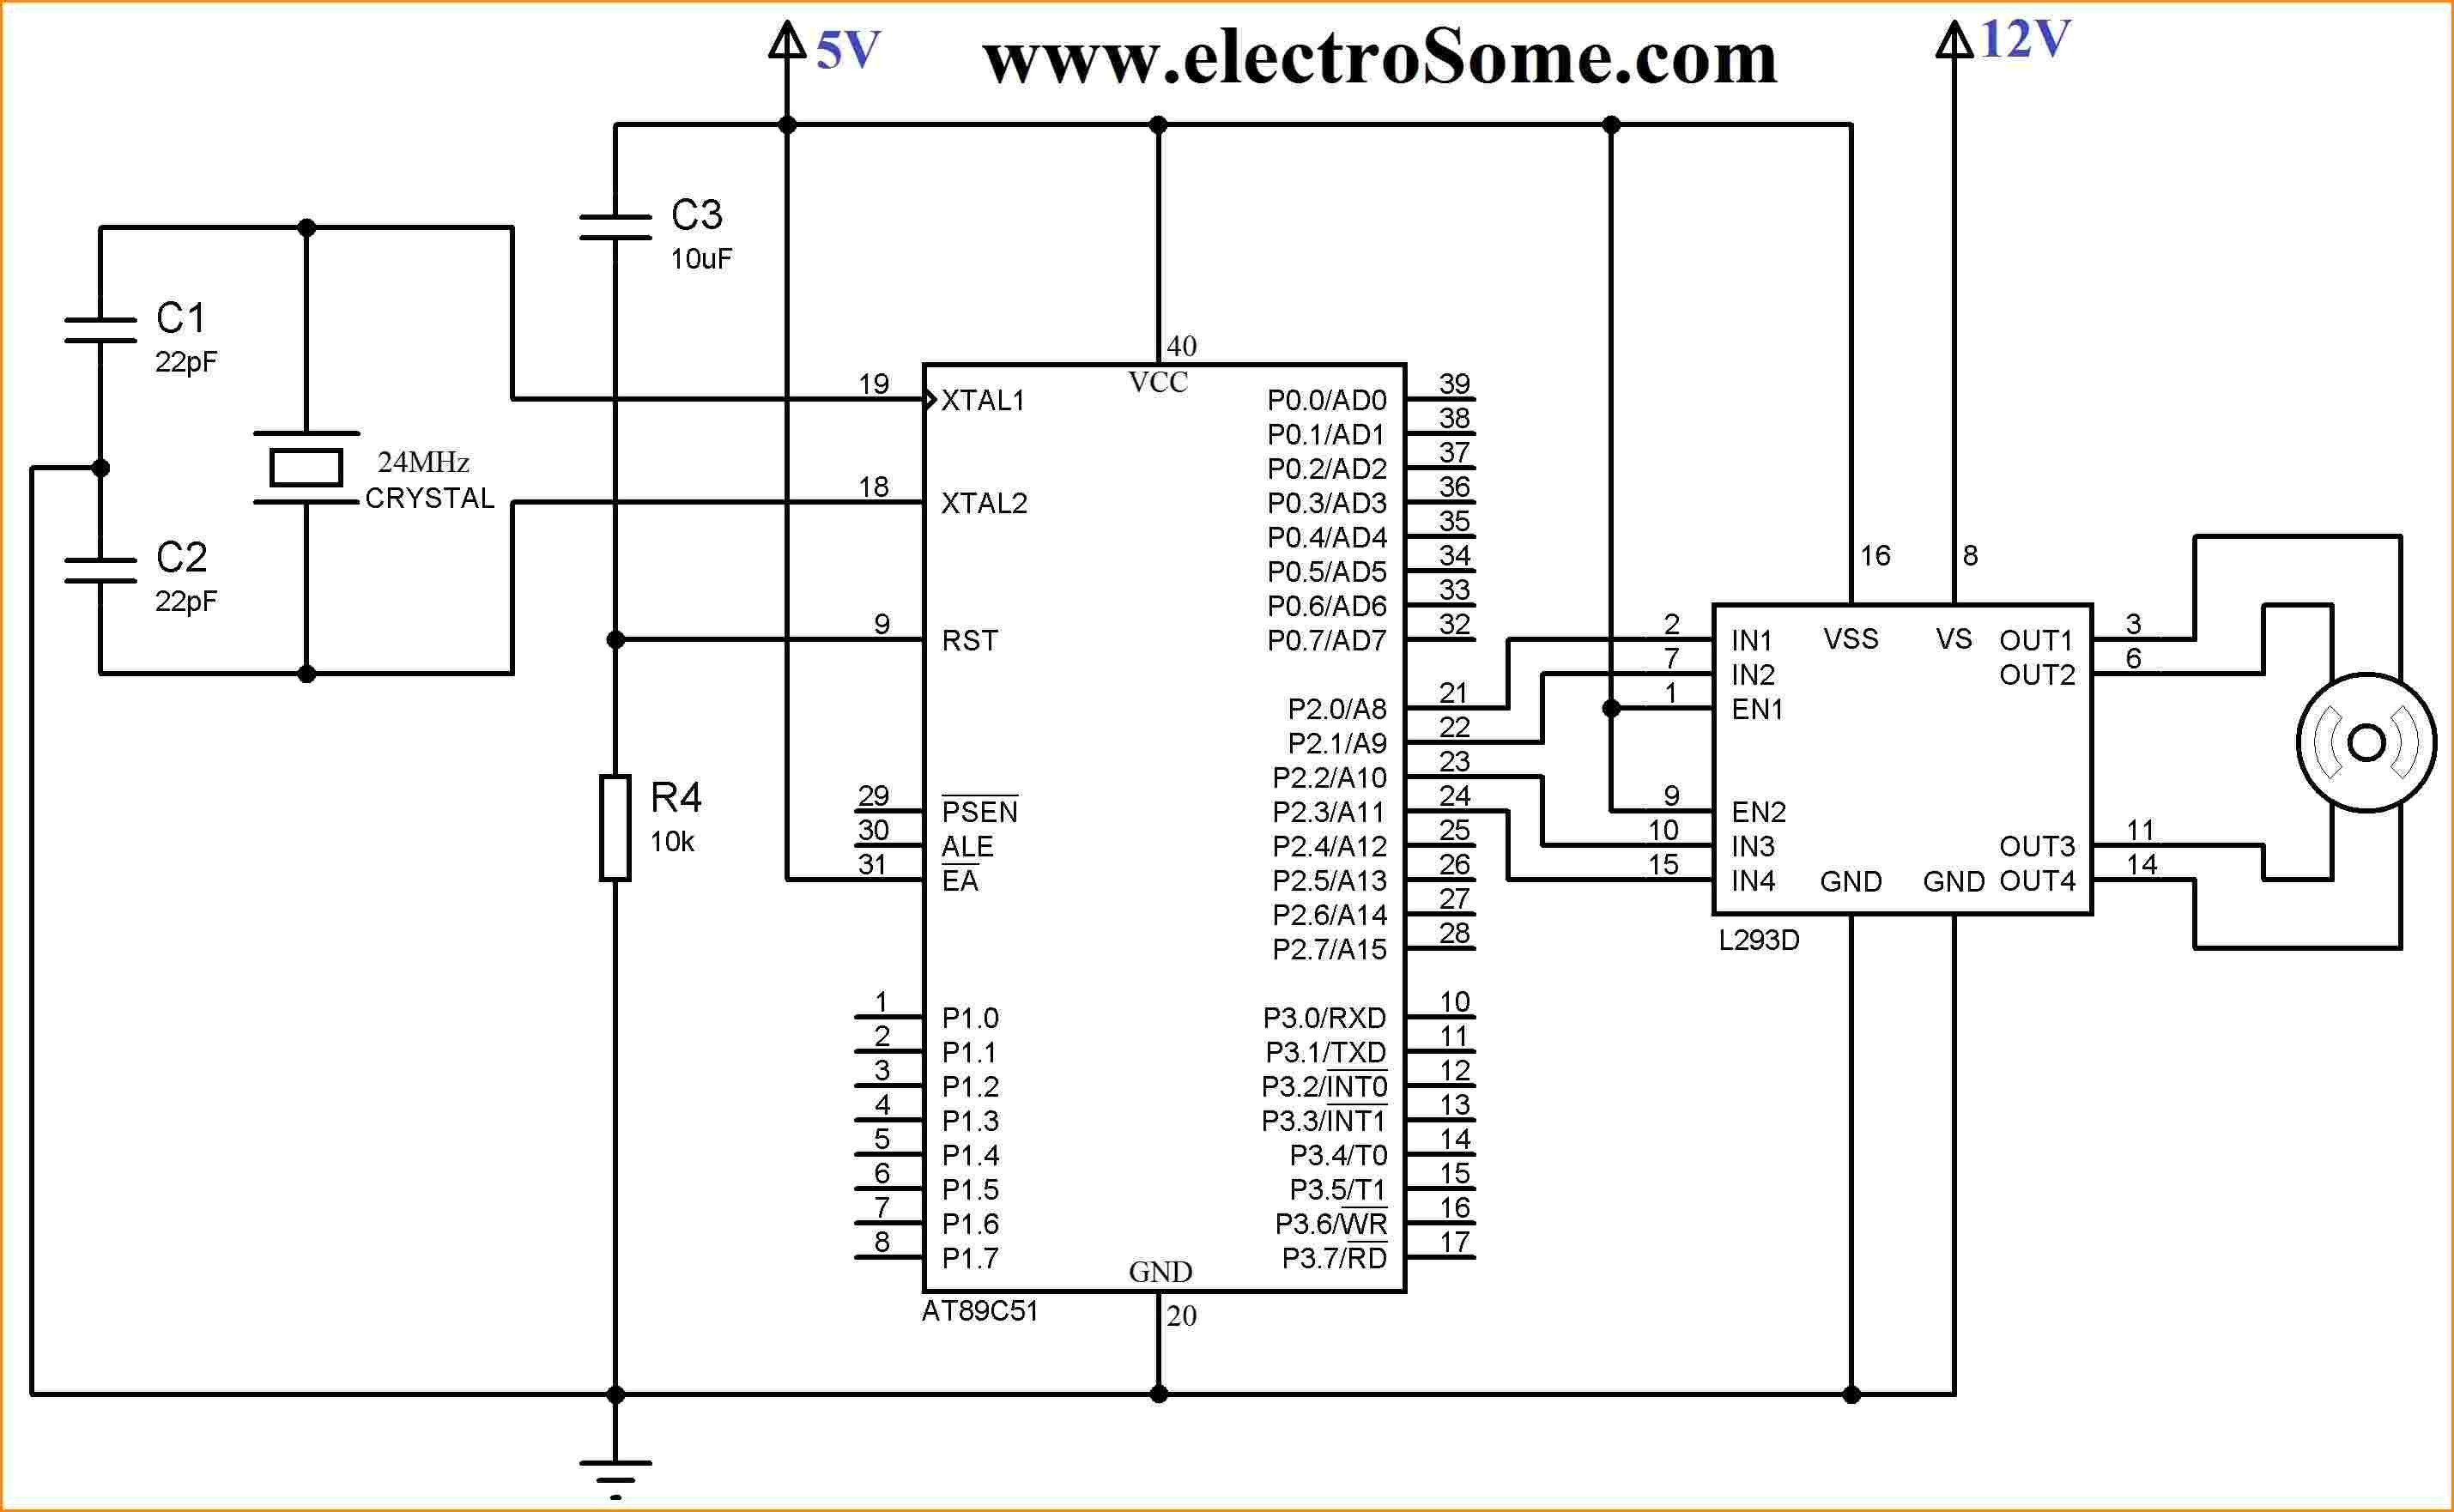 wiring diagram for security camera thoritsolutions rh thoritsolutions